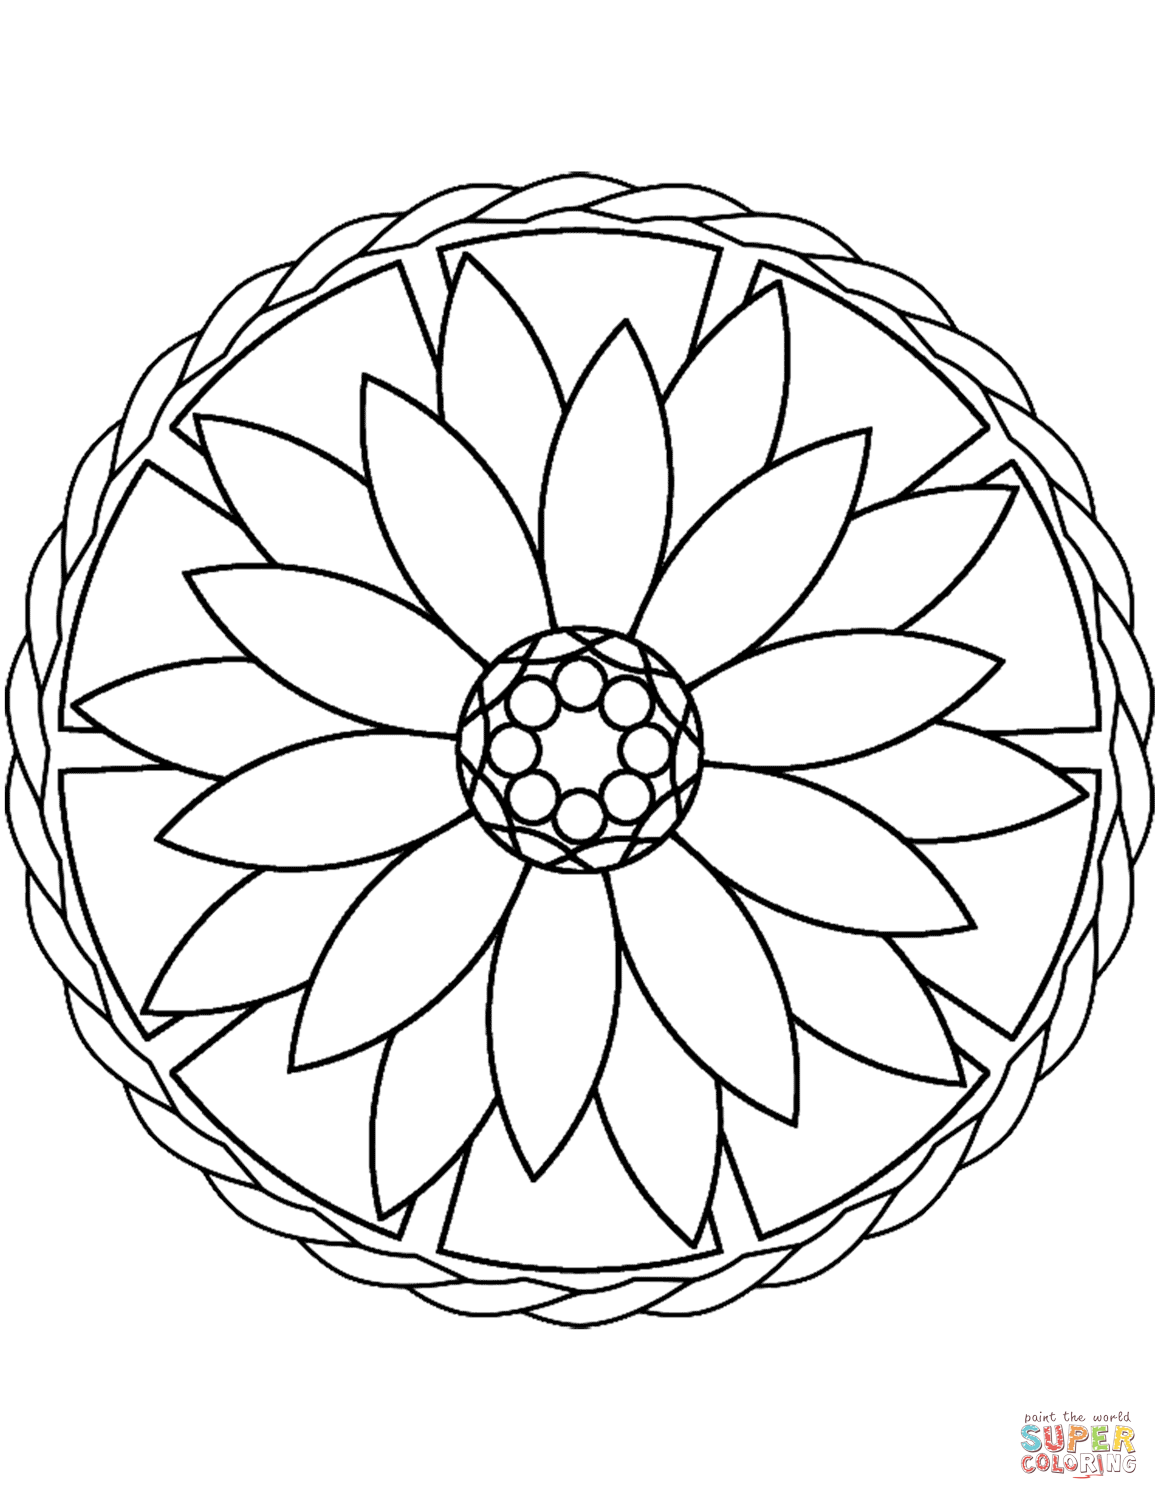 Simple Mandala With Flower Coloring Page